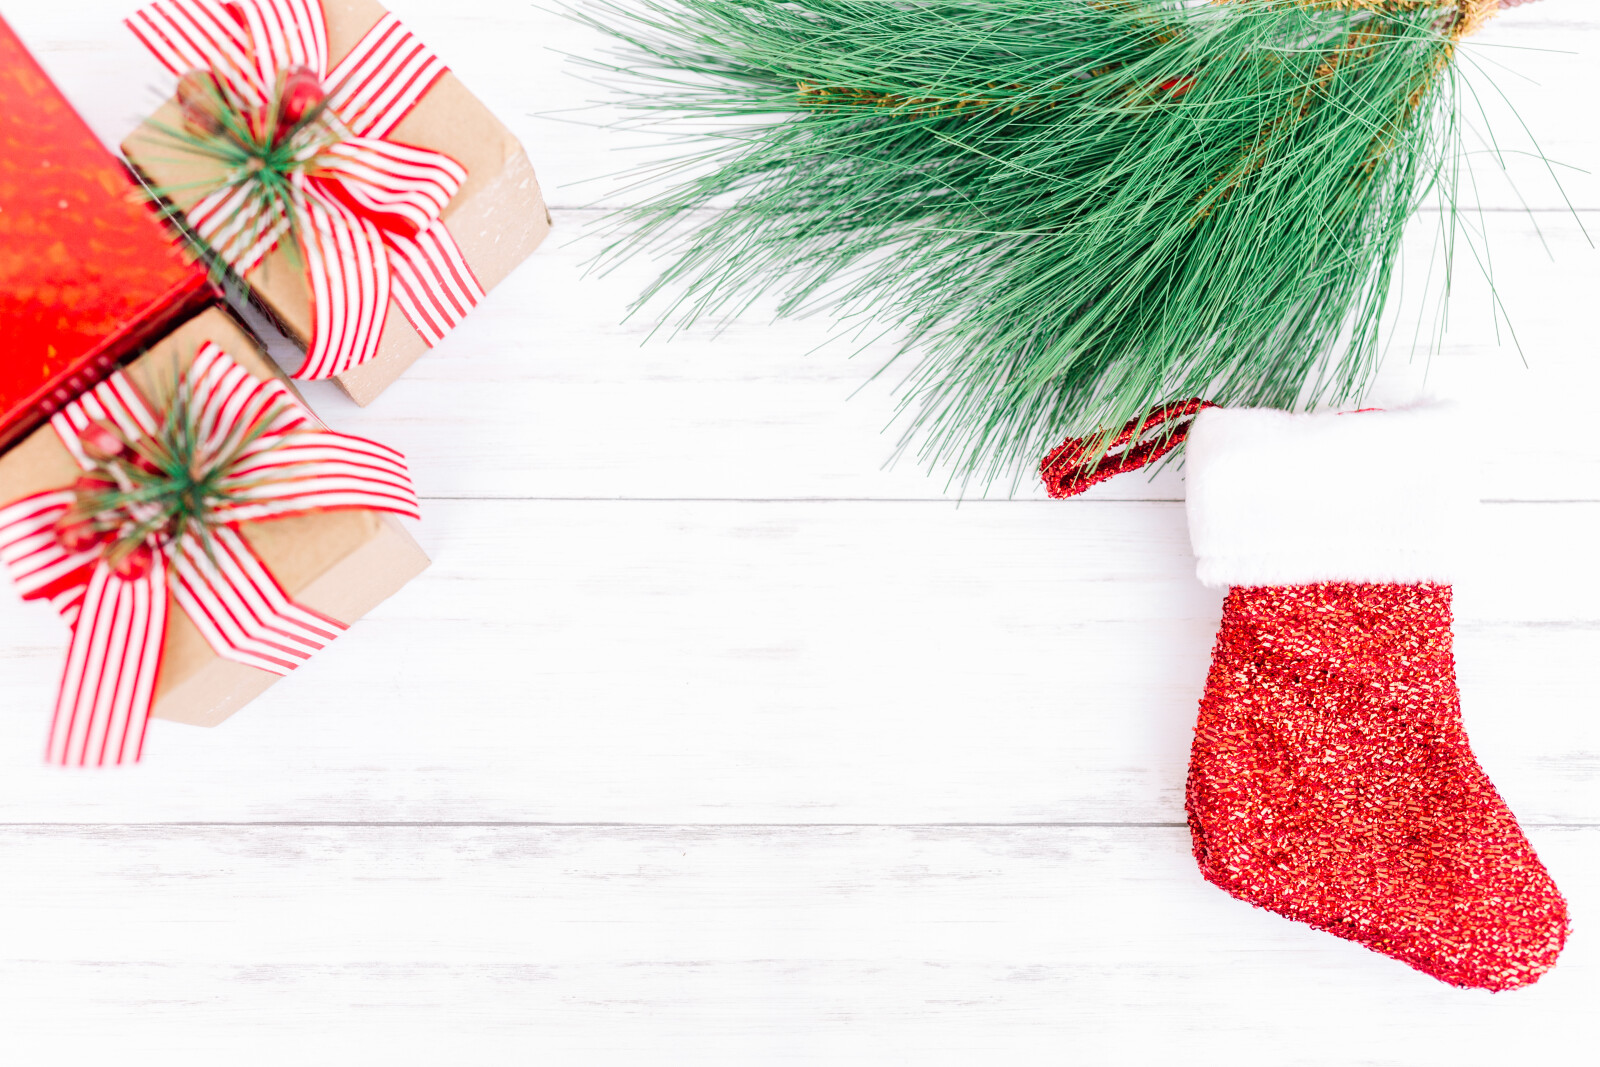 4 Stress-Less Tips for the Holidays